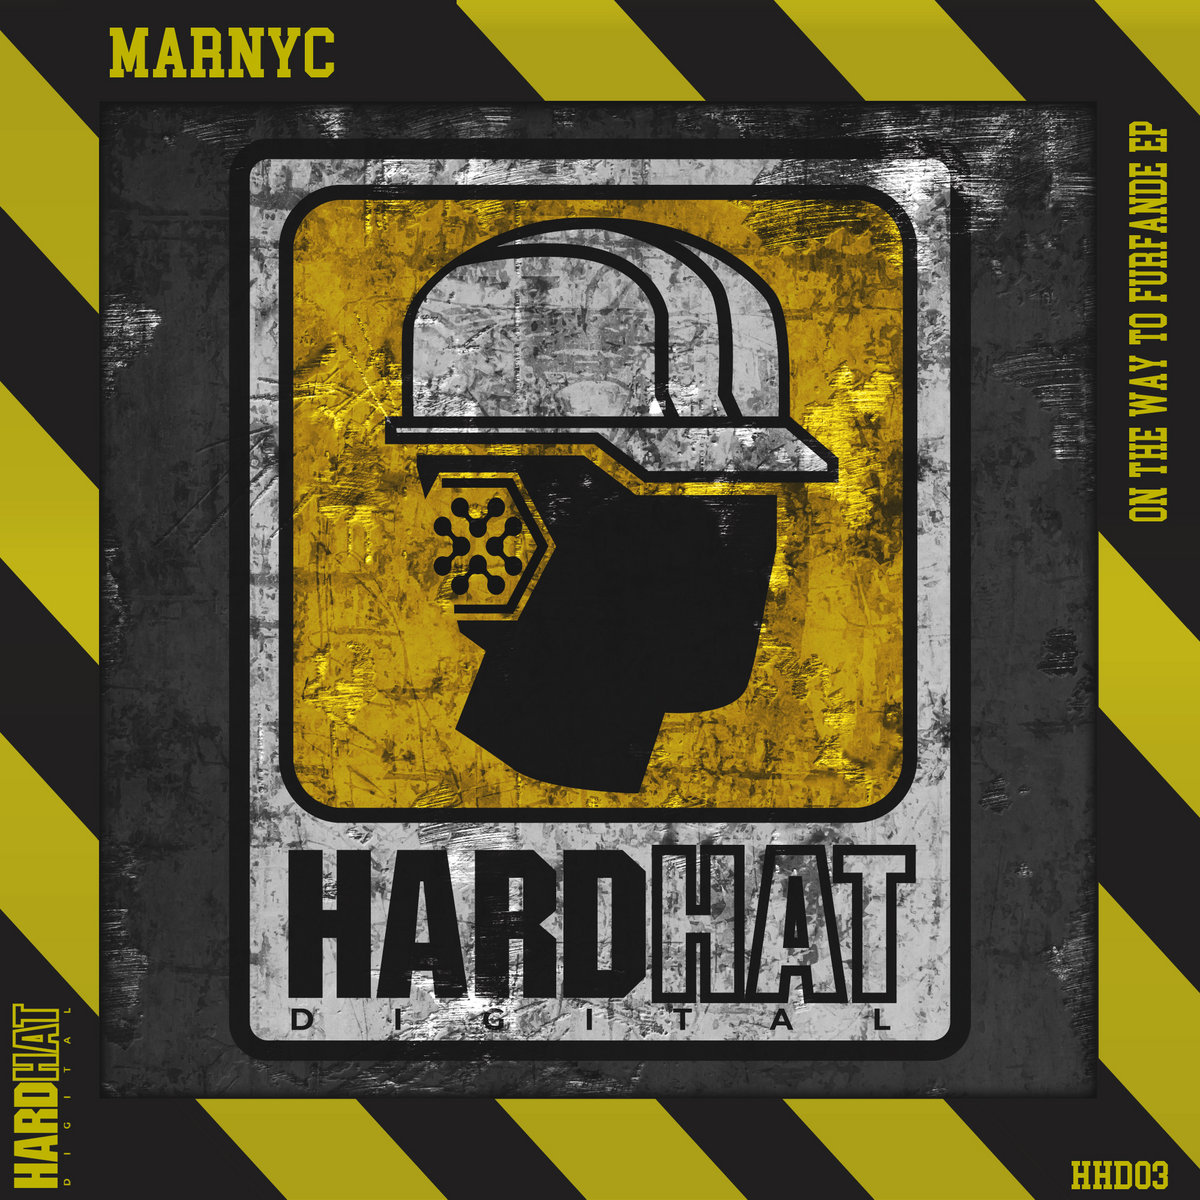 On The Way To Furfande EP by Marnyc